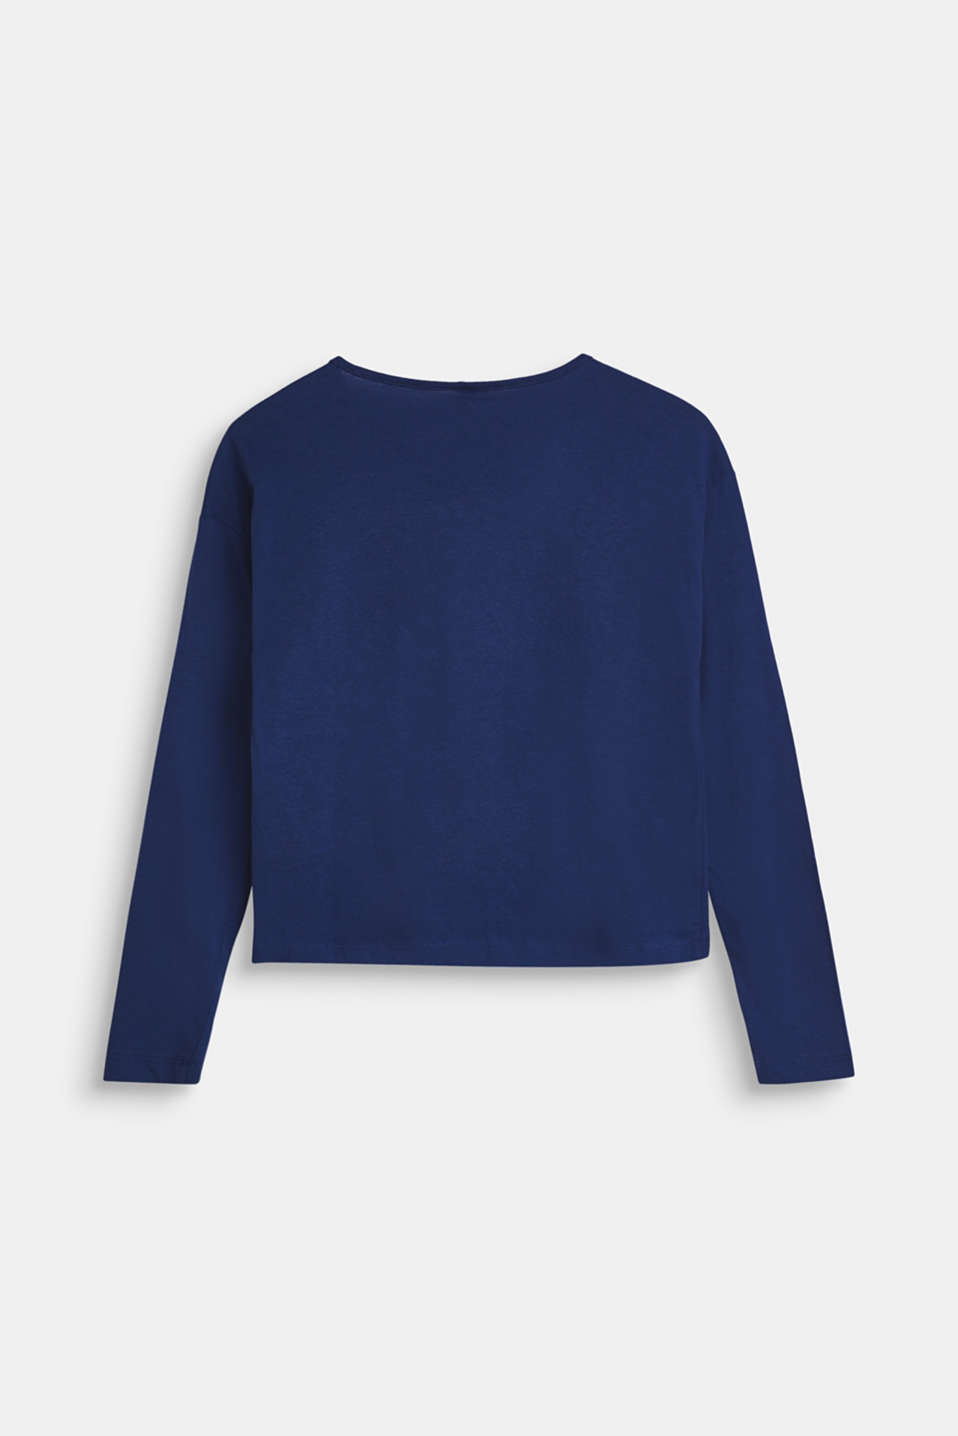 Statement print long sleeve top, 100% cotton, LCMARINE BLUE, detail image number 1